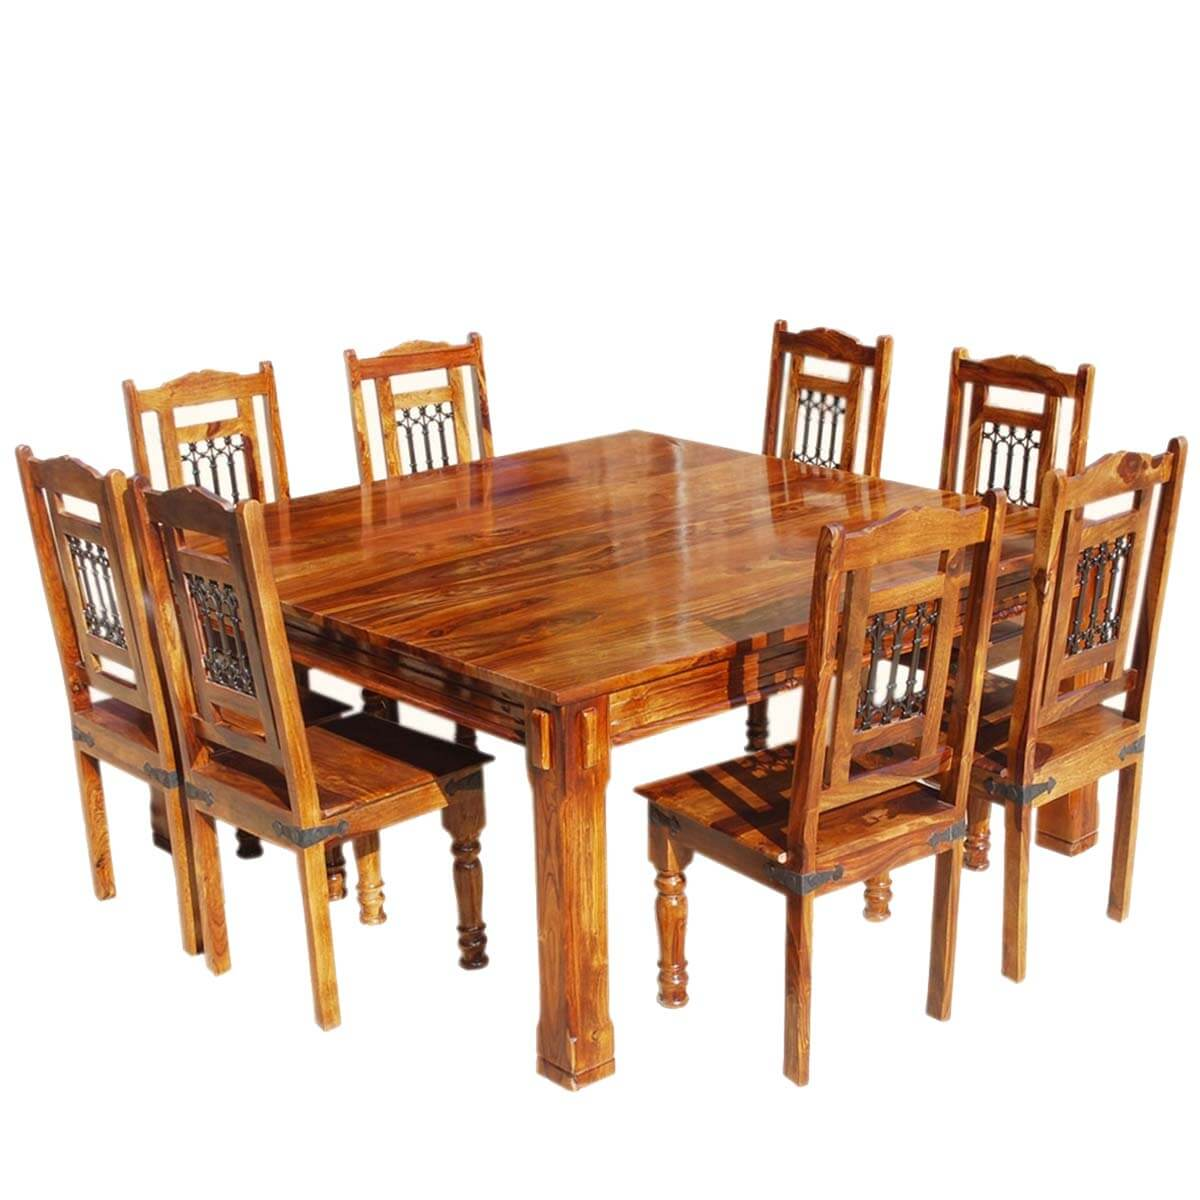 Rustic Wood Dining Room Table: Transitional Solid Wood Rustic Square Dining Table Chairs Set